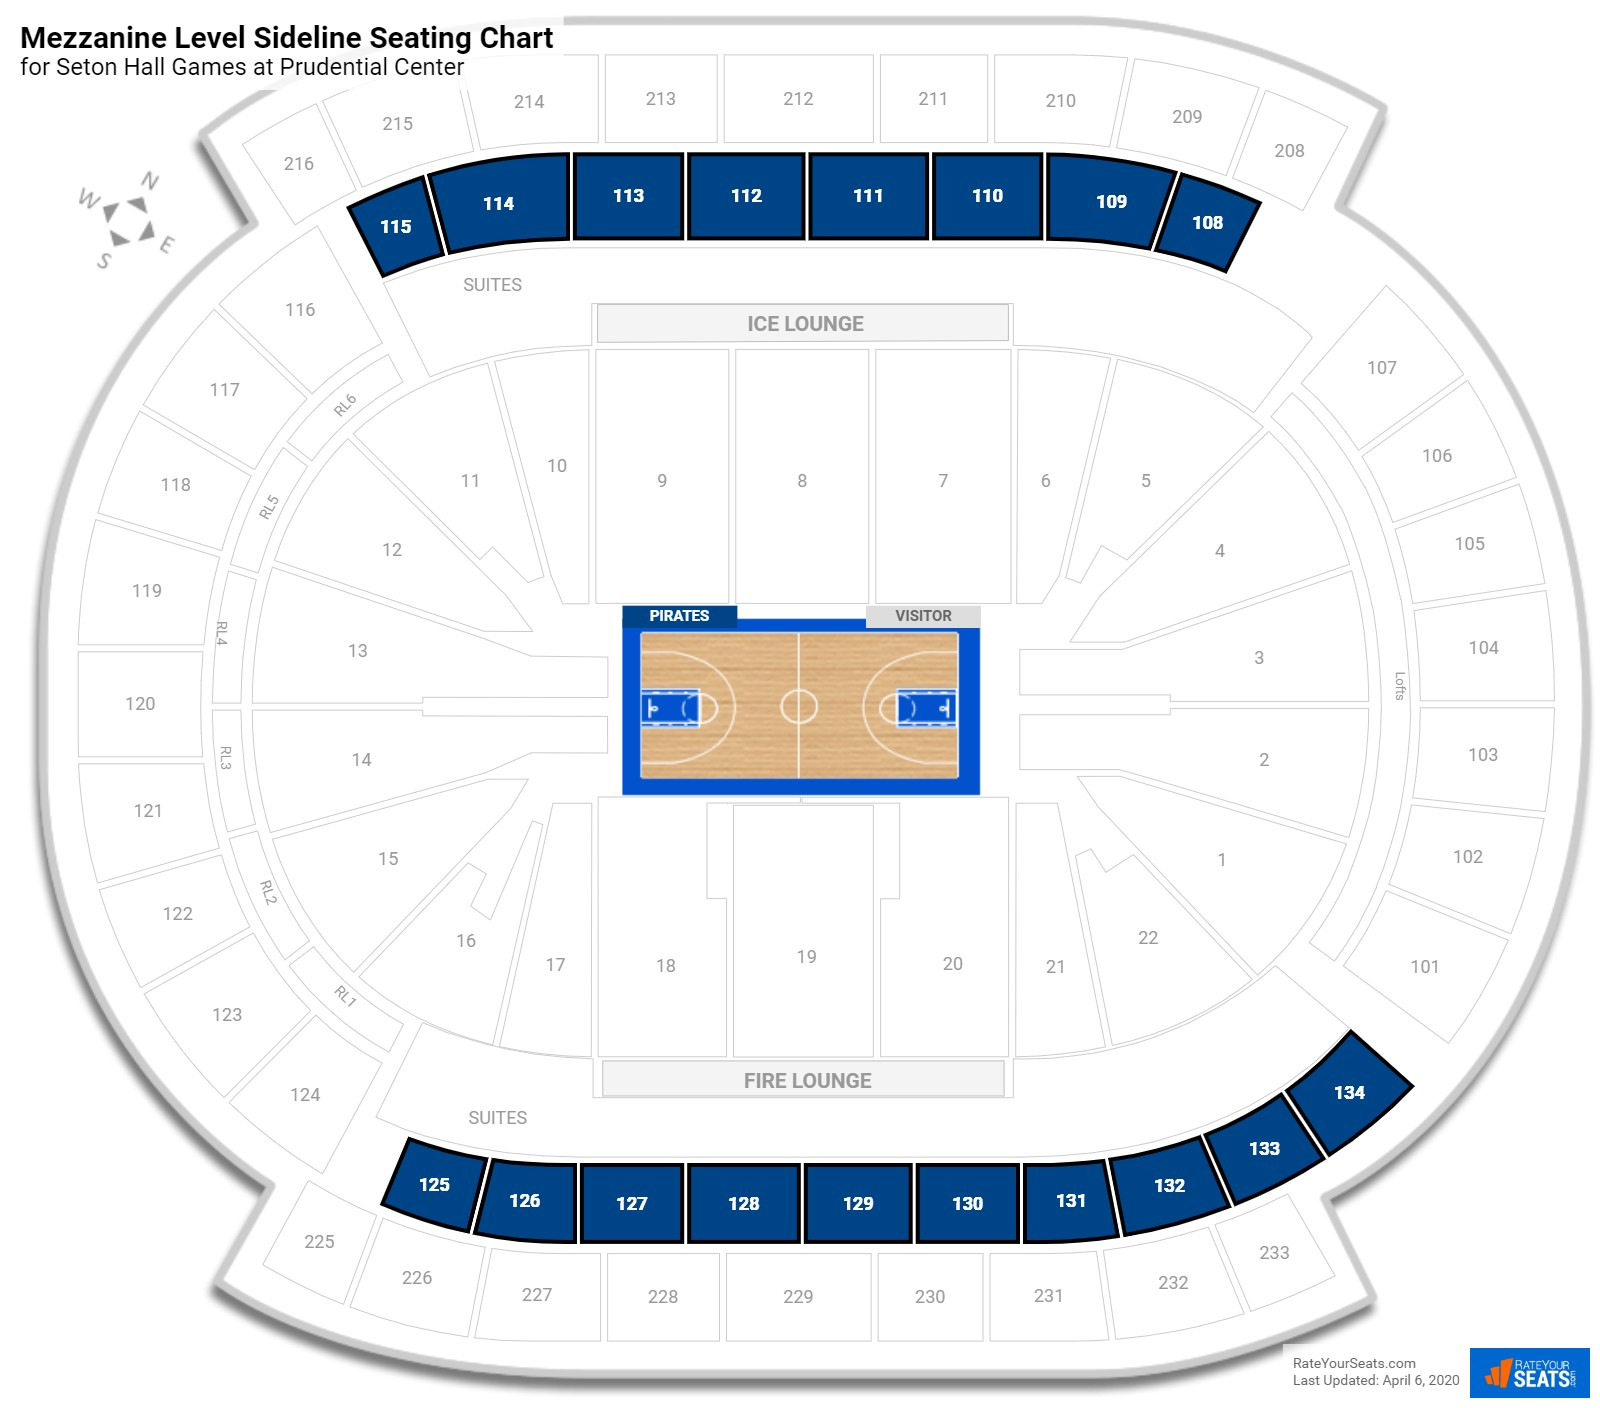 Prudential Center Mezzanine Level Sideline Seating Chart